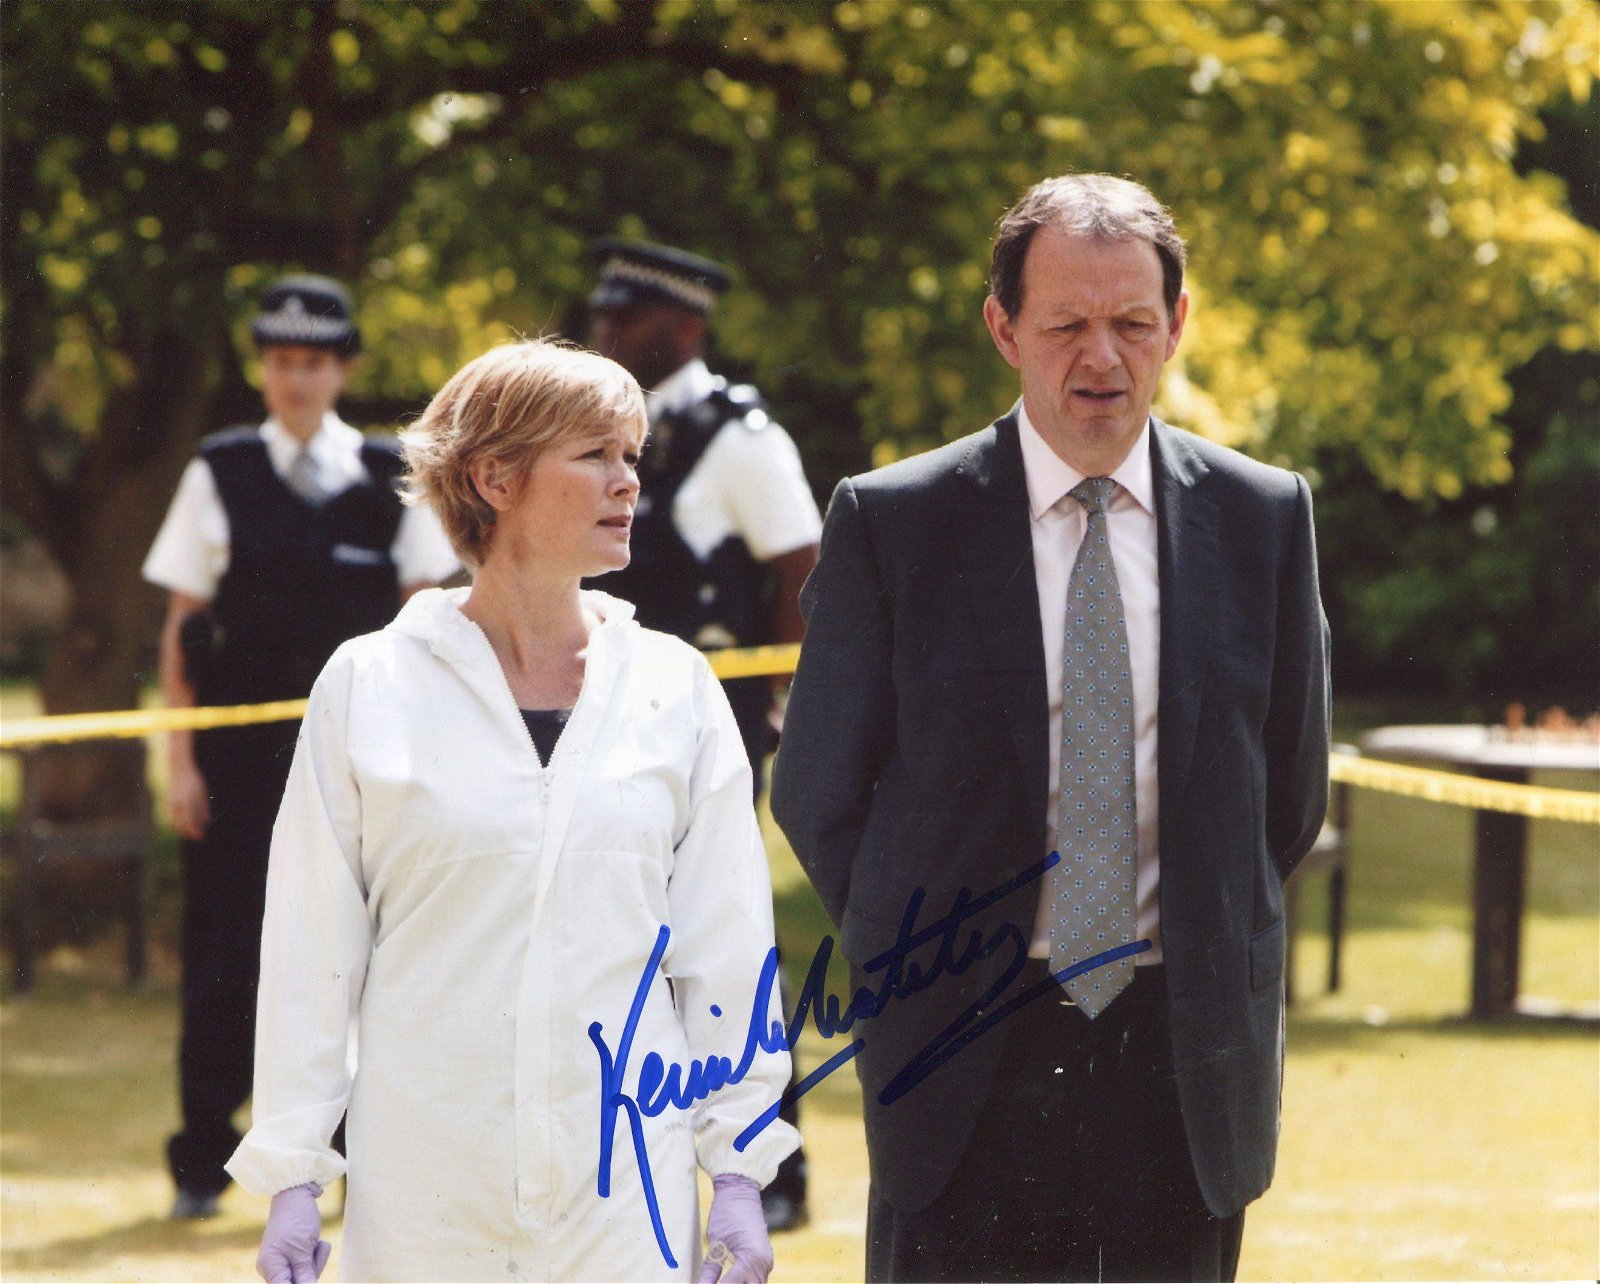 Kevin Whately. 8x10 photo from the Inspector Morse